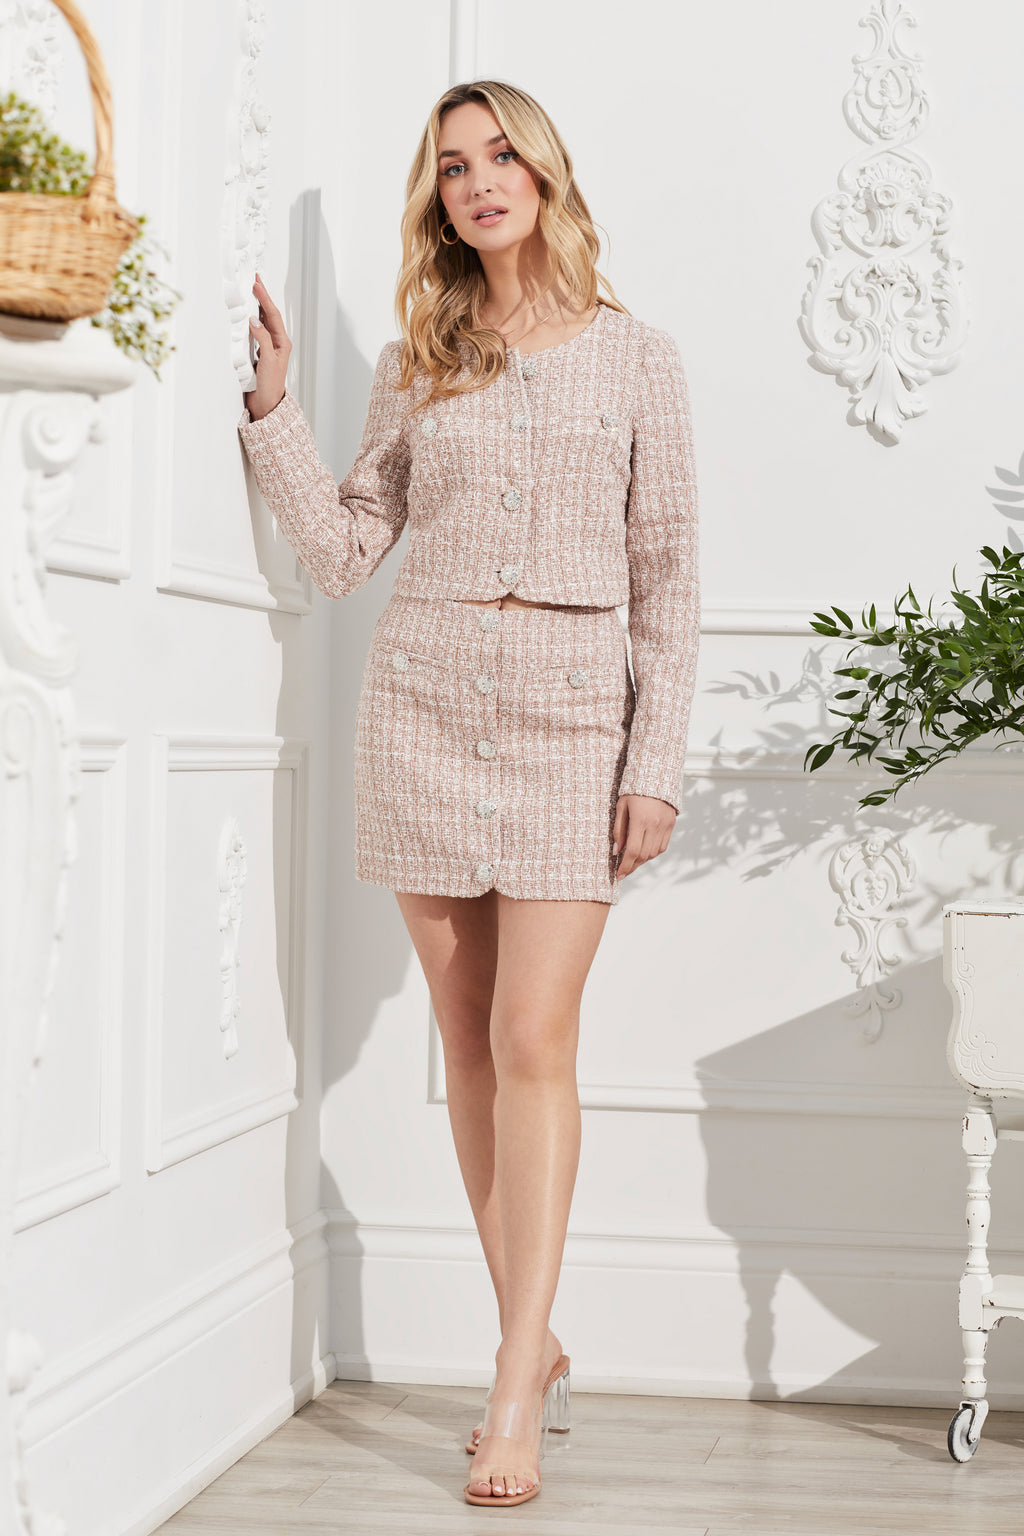 Jewel Button Tweed Mini Skirt - honey